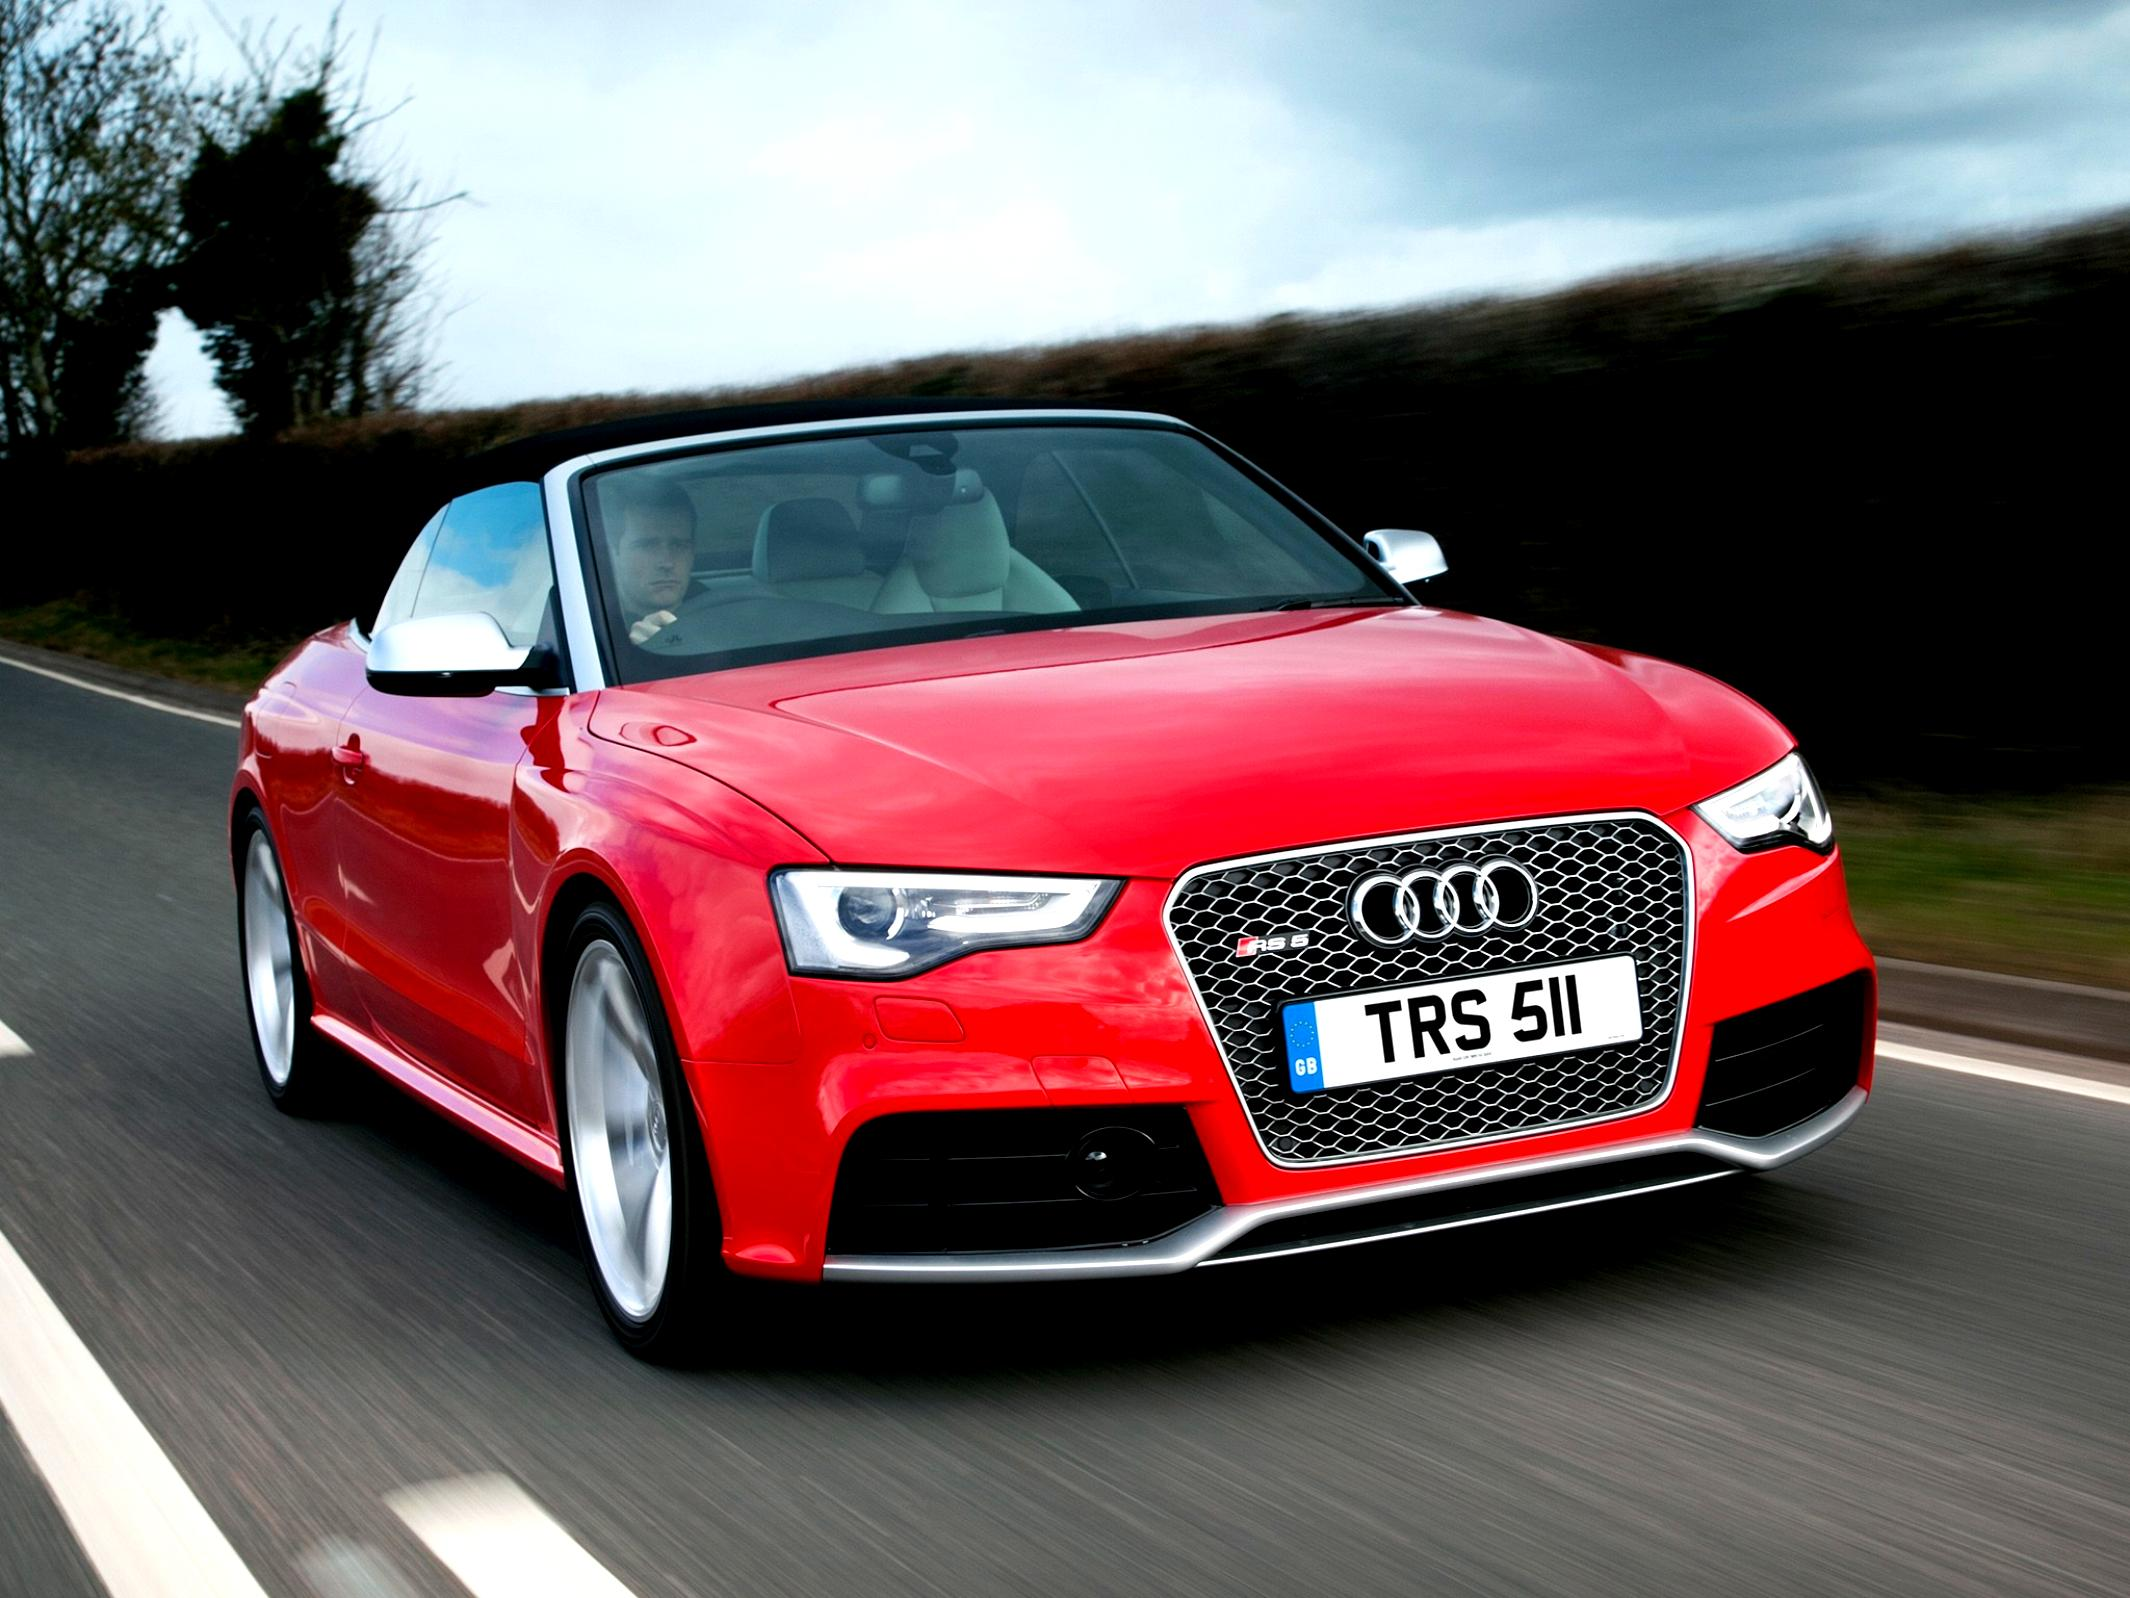 Audi RS5 Cabriolet 2013 #69